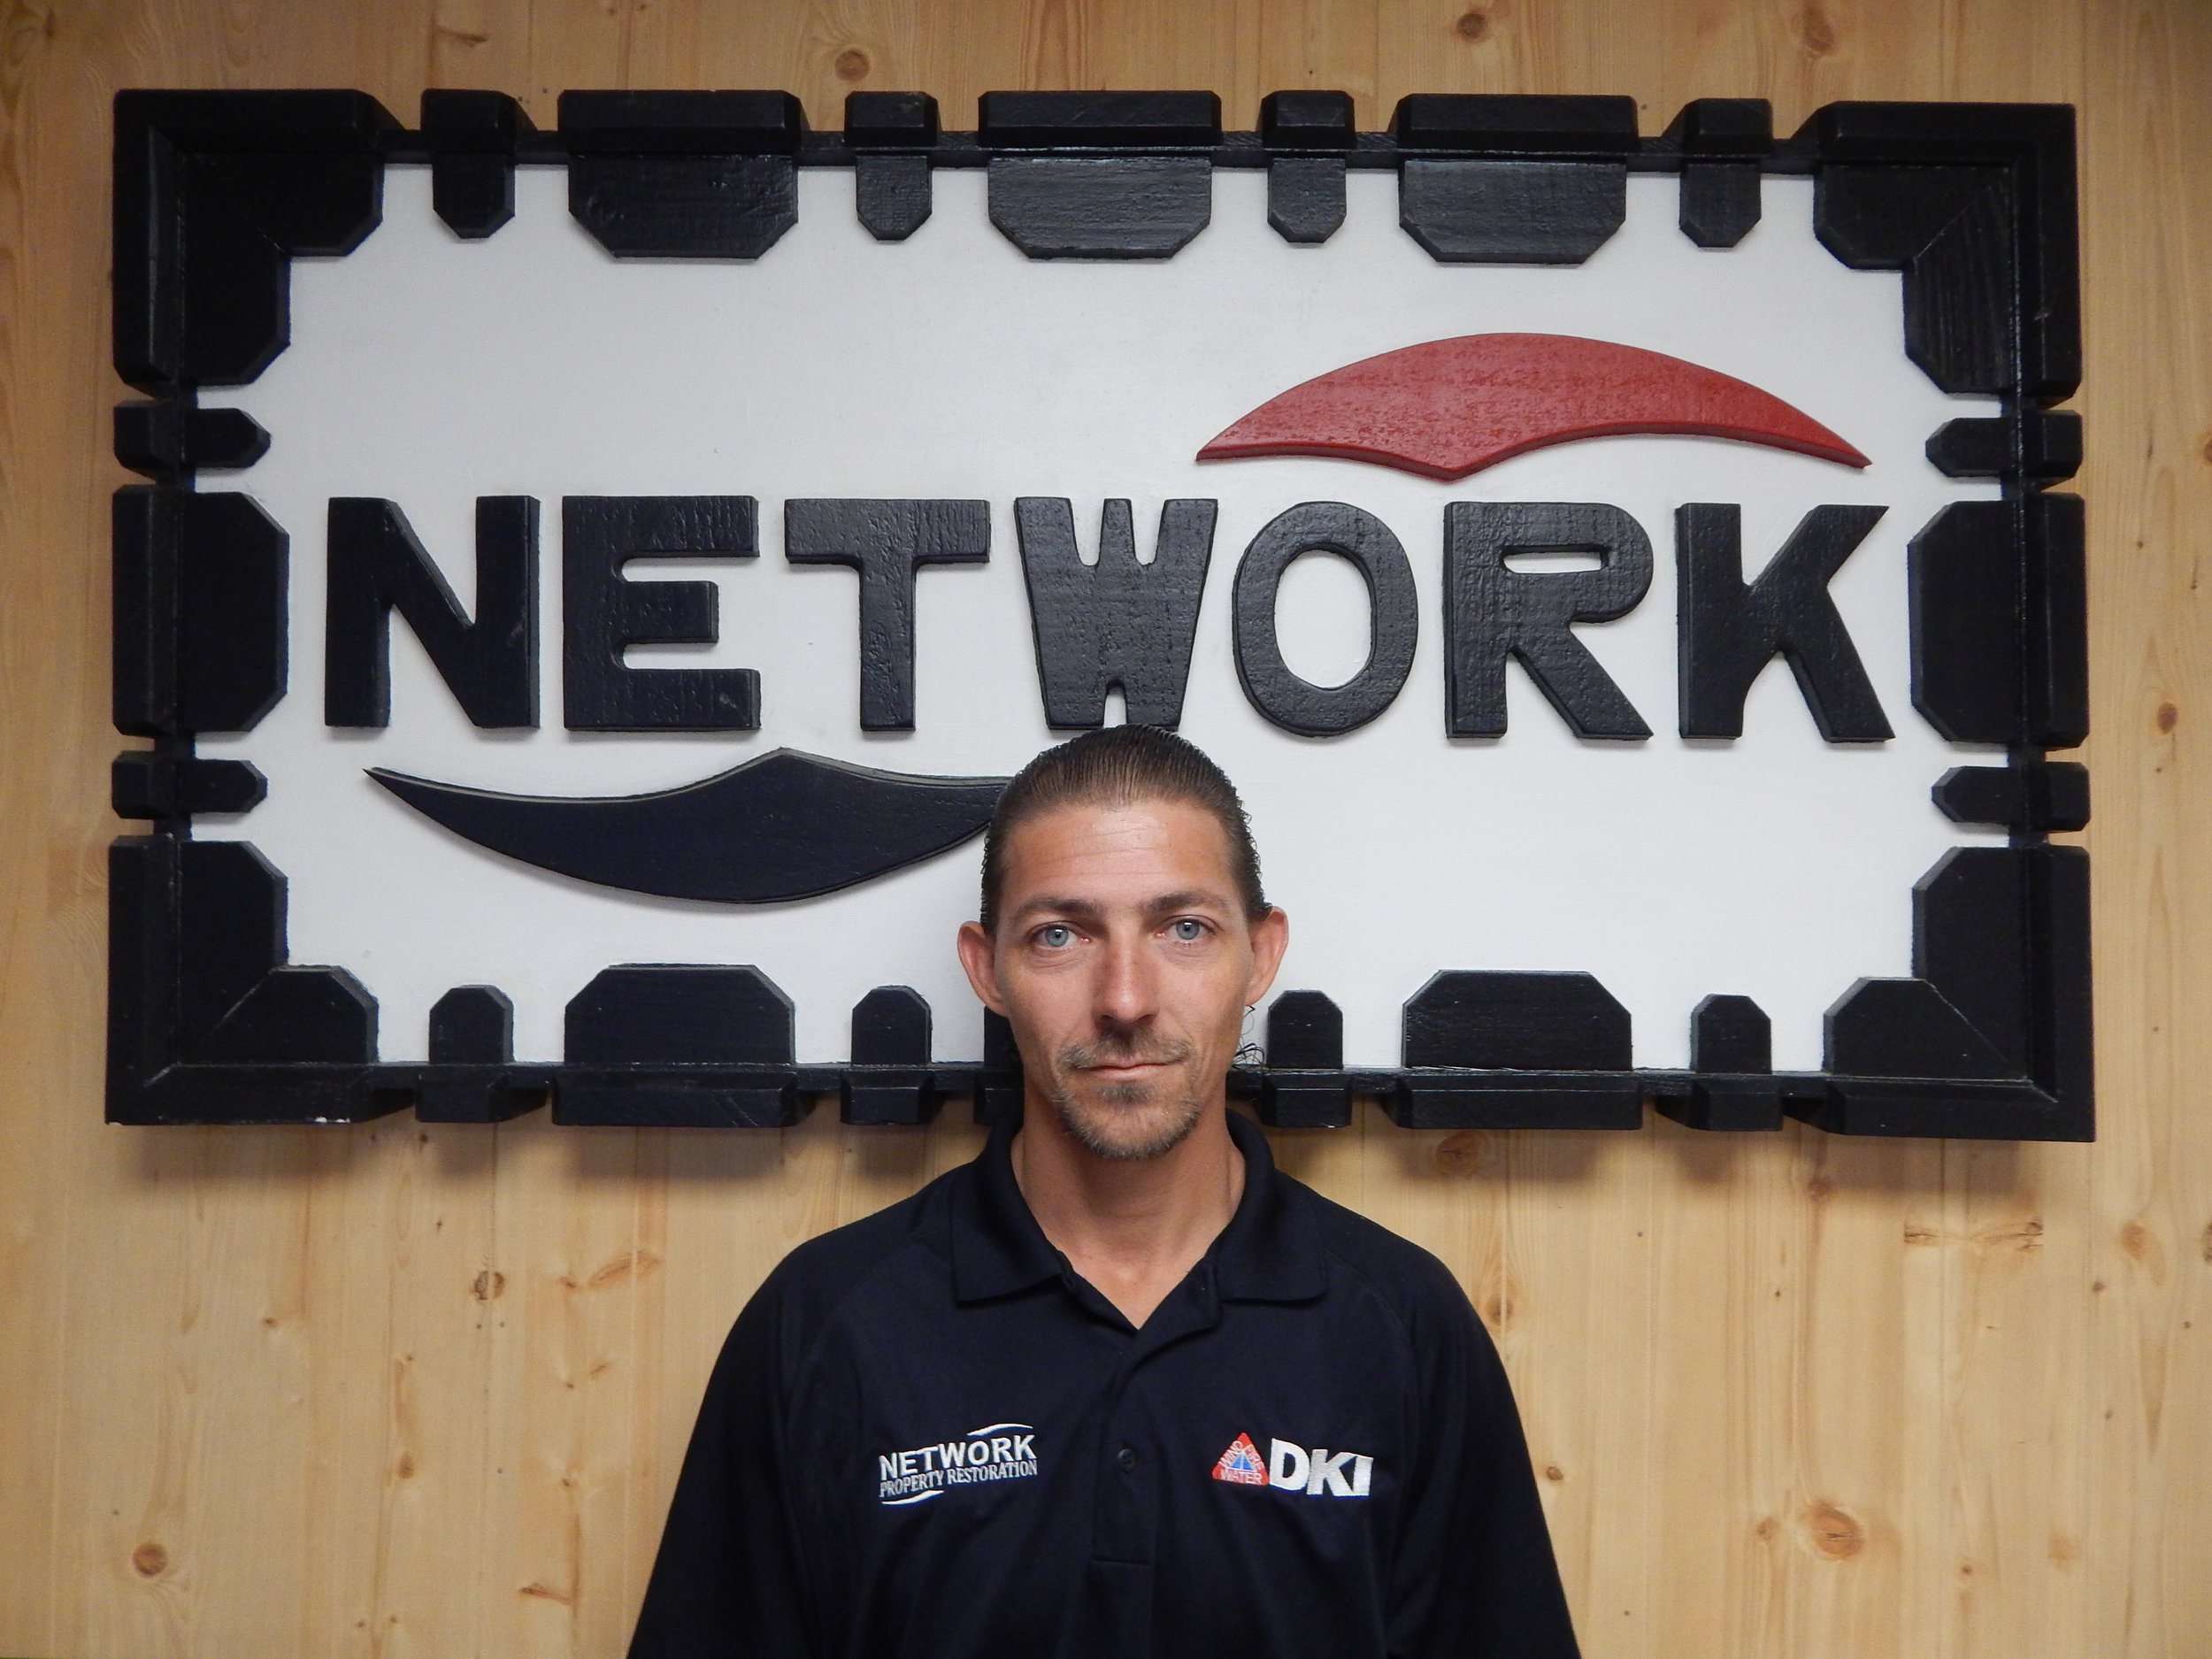 """I enjoy my job at Network Restoration, LLC DKI"""